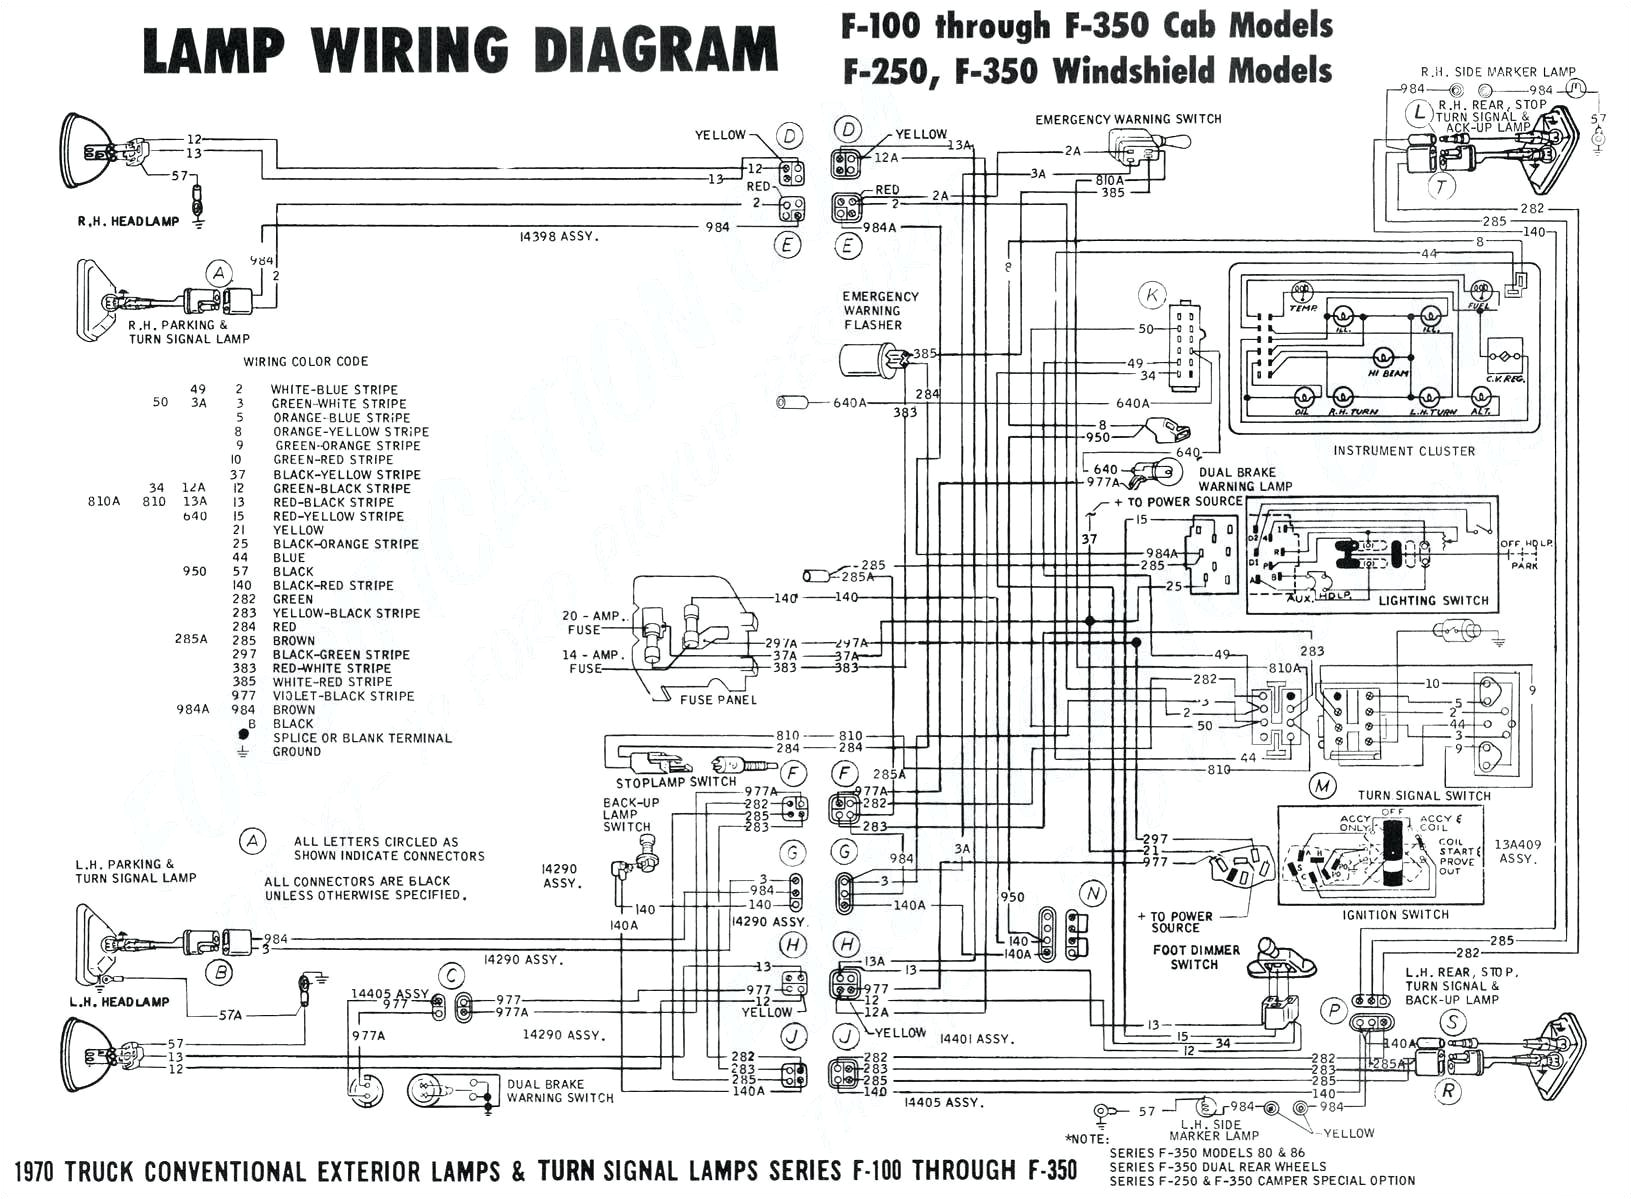 wiring diagram likewise ford taurus fan volvo relay wiring besides ford f 150 fuel pump relay likewise ford taurus coolant system diagram